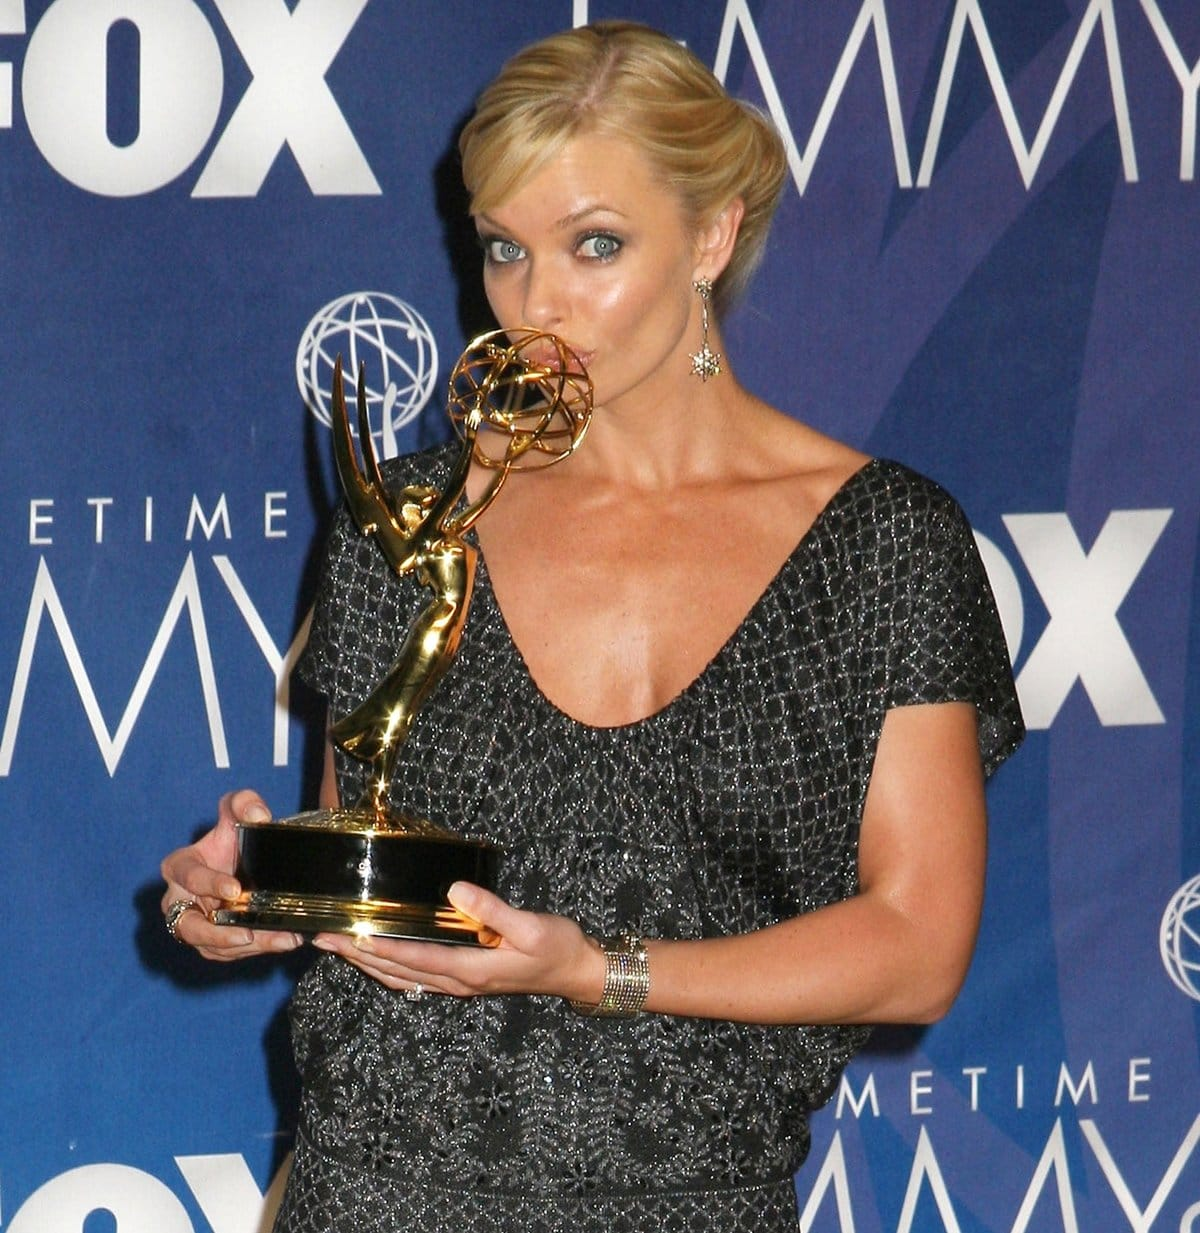 Jaime Pressly won an Emmy Award for Outstanding Supporting Actress in a Comedy Series for her work on the American sitcom television series My Name Is Earl